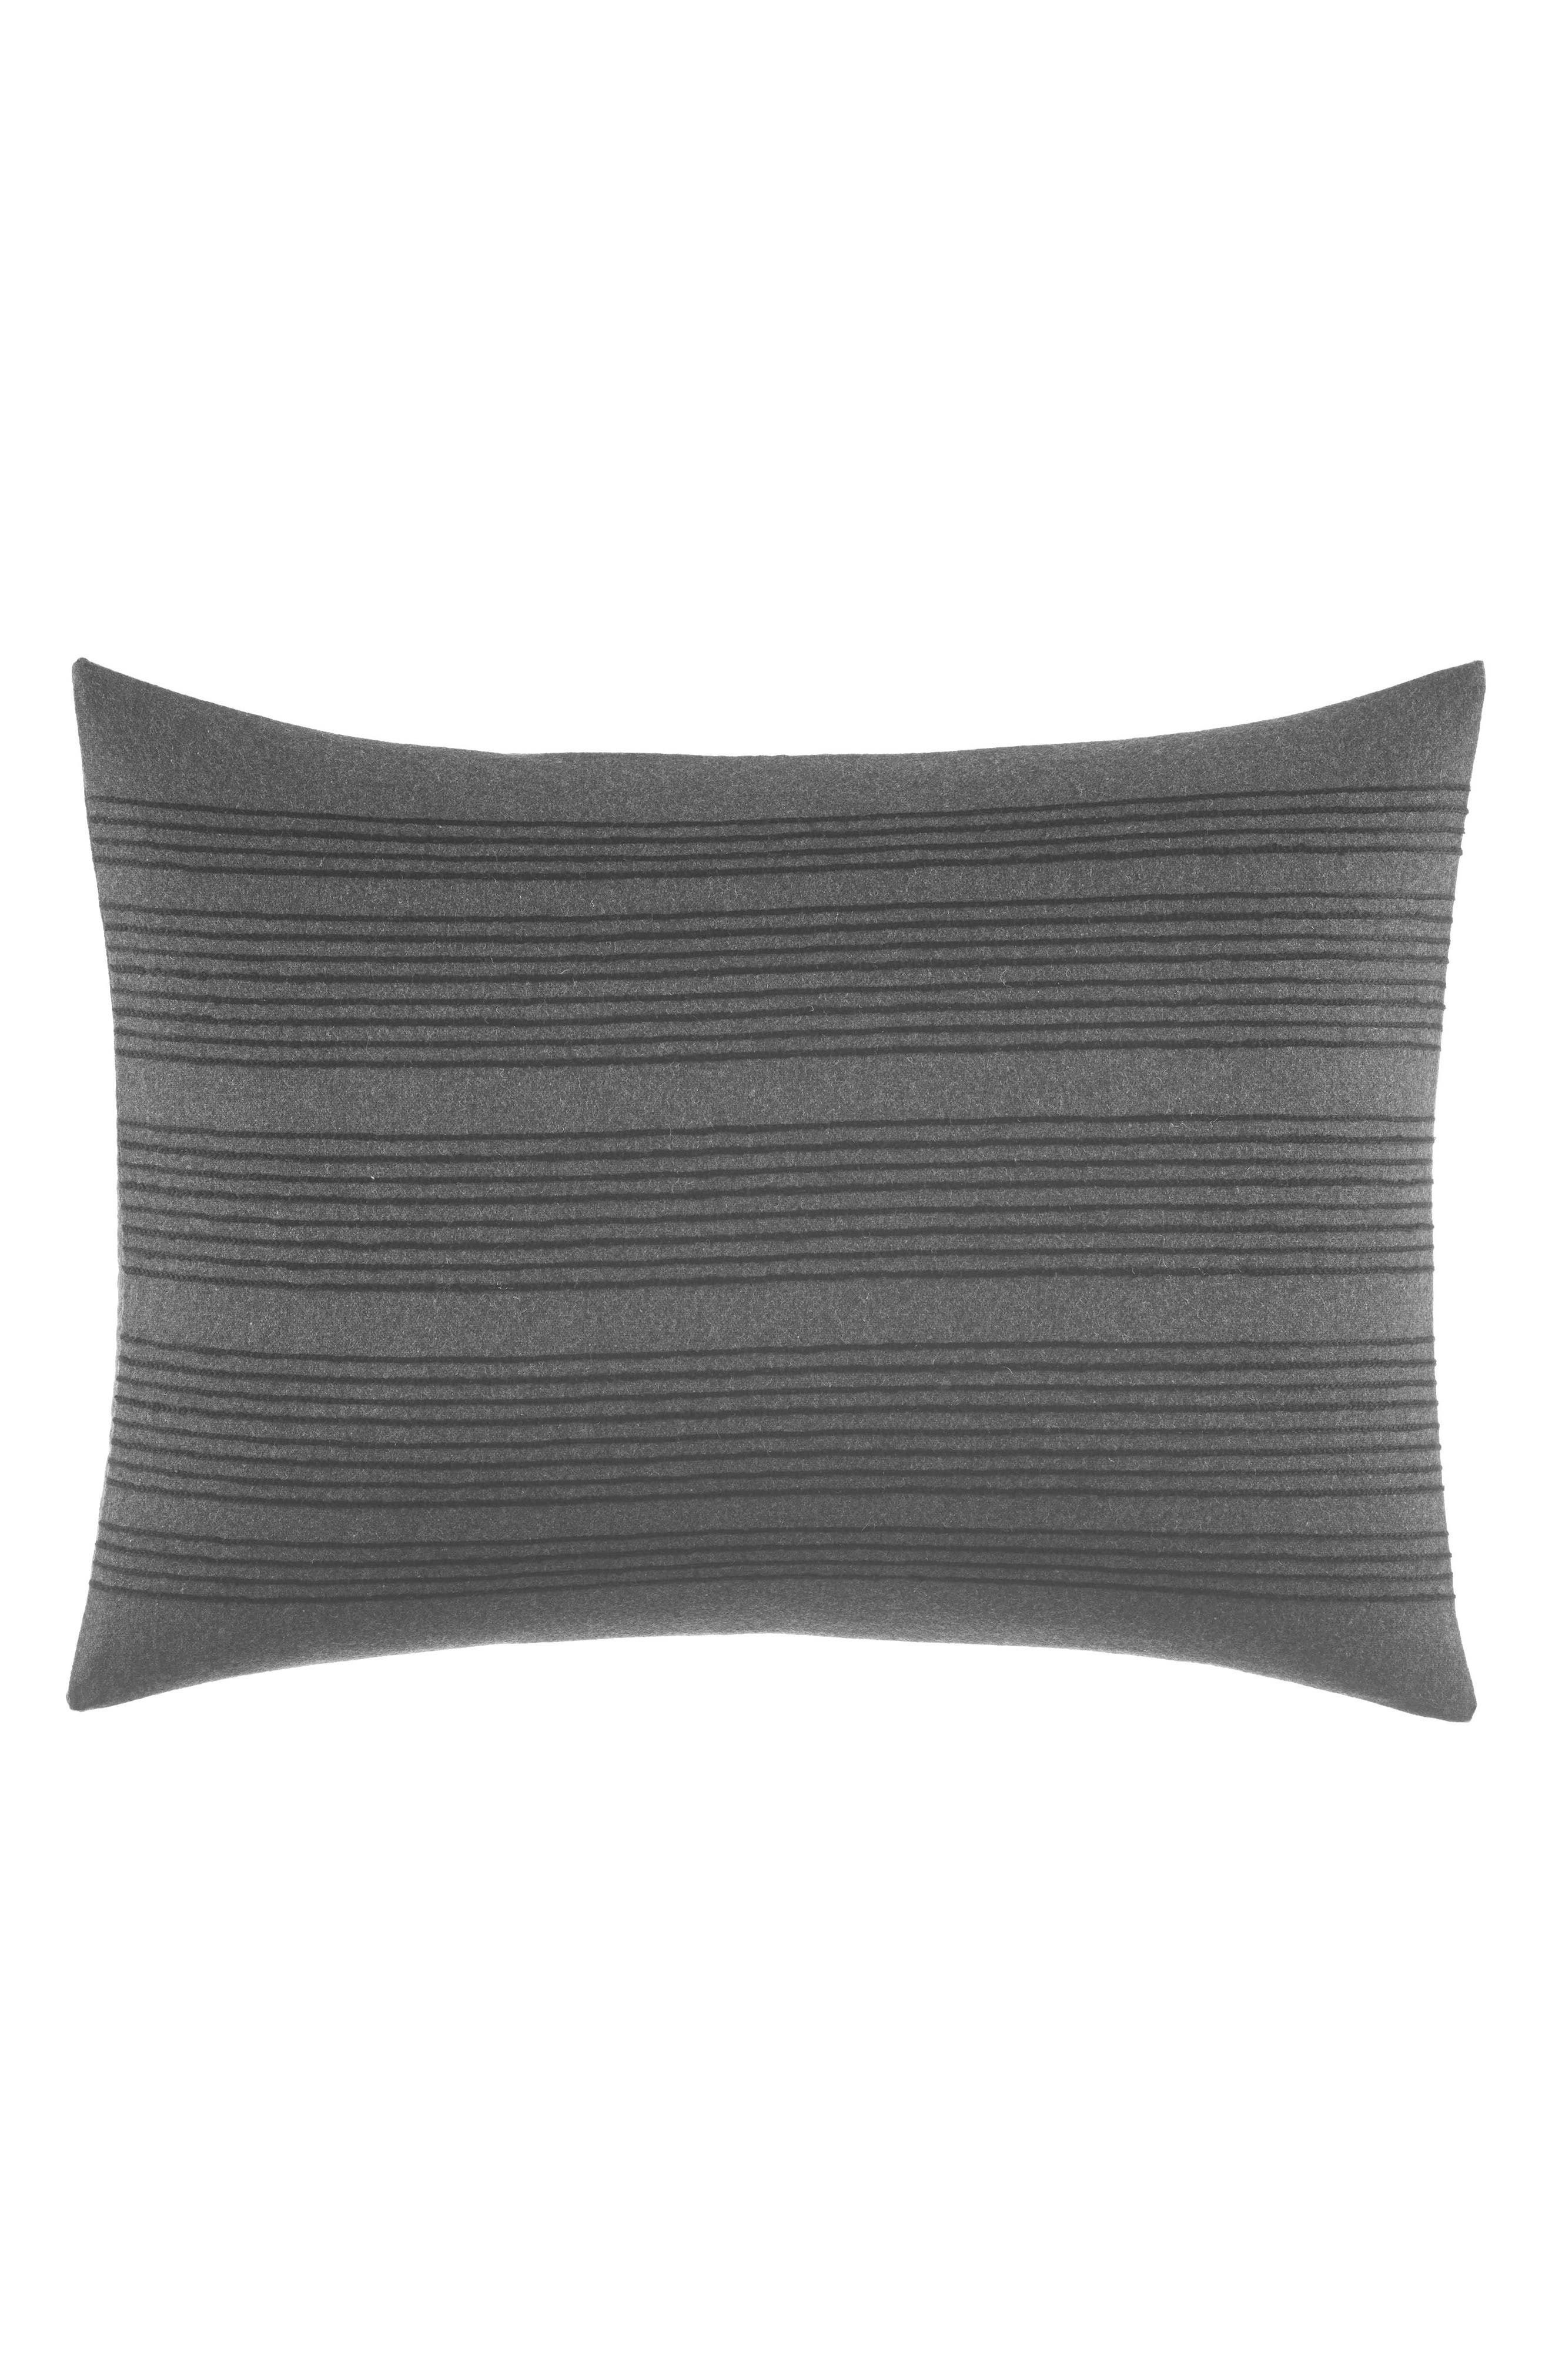 Vera Wang Charcoal Stripe Accent Pillow